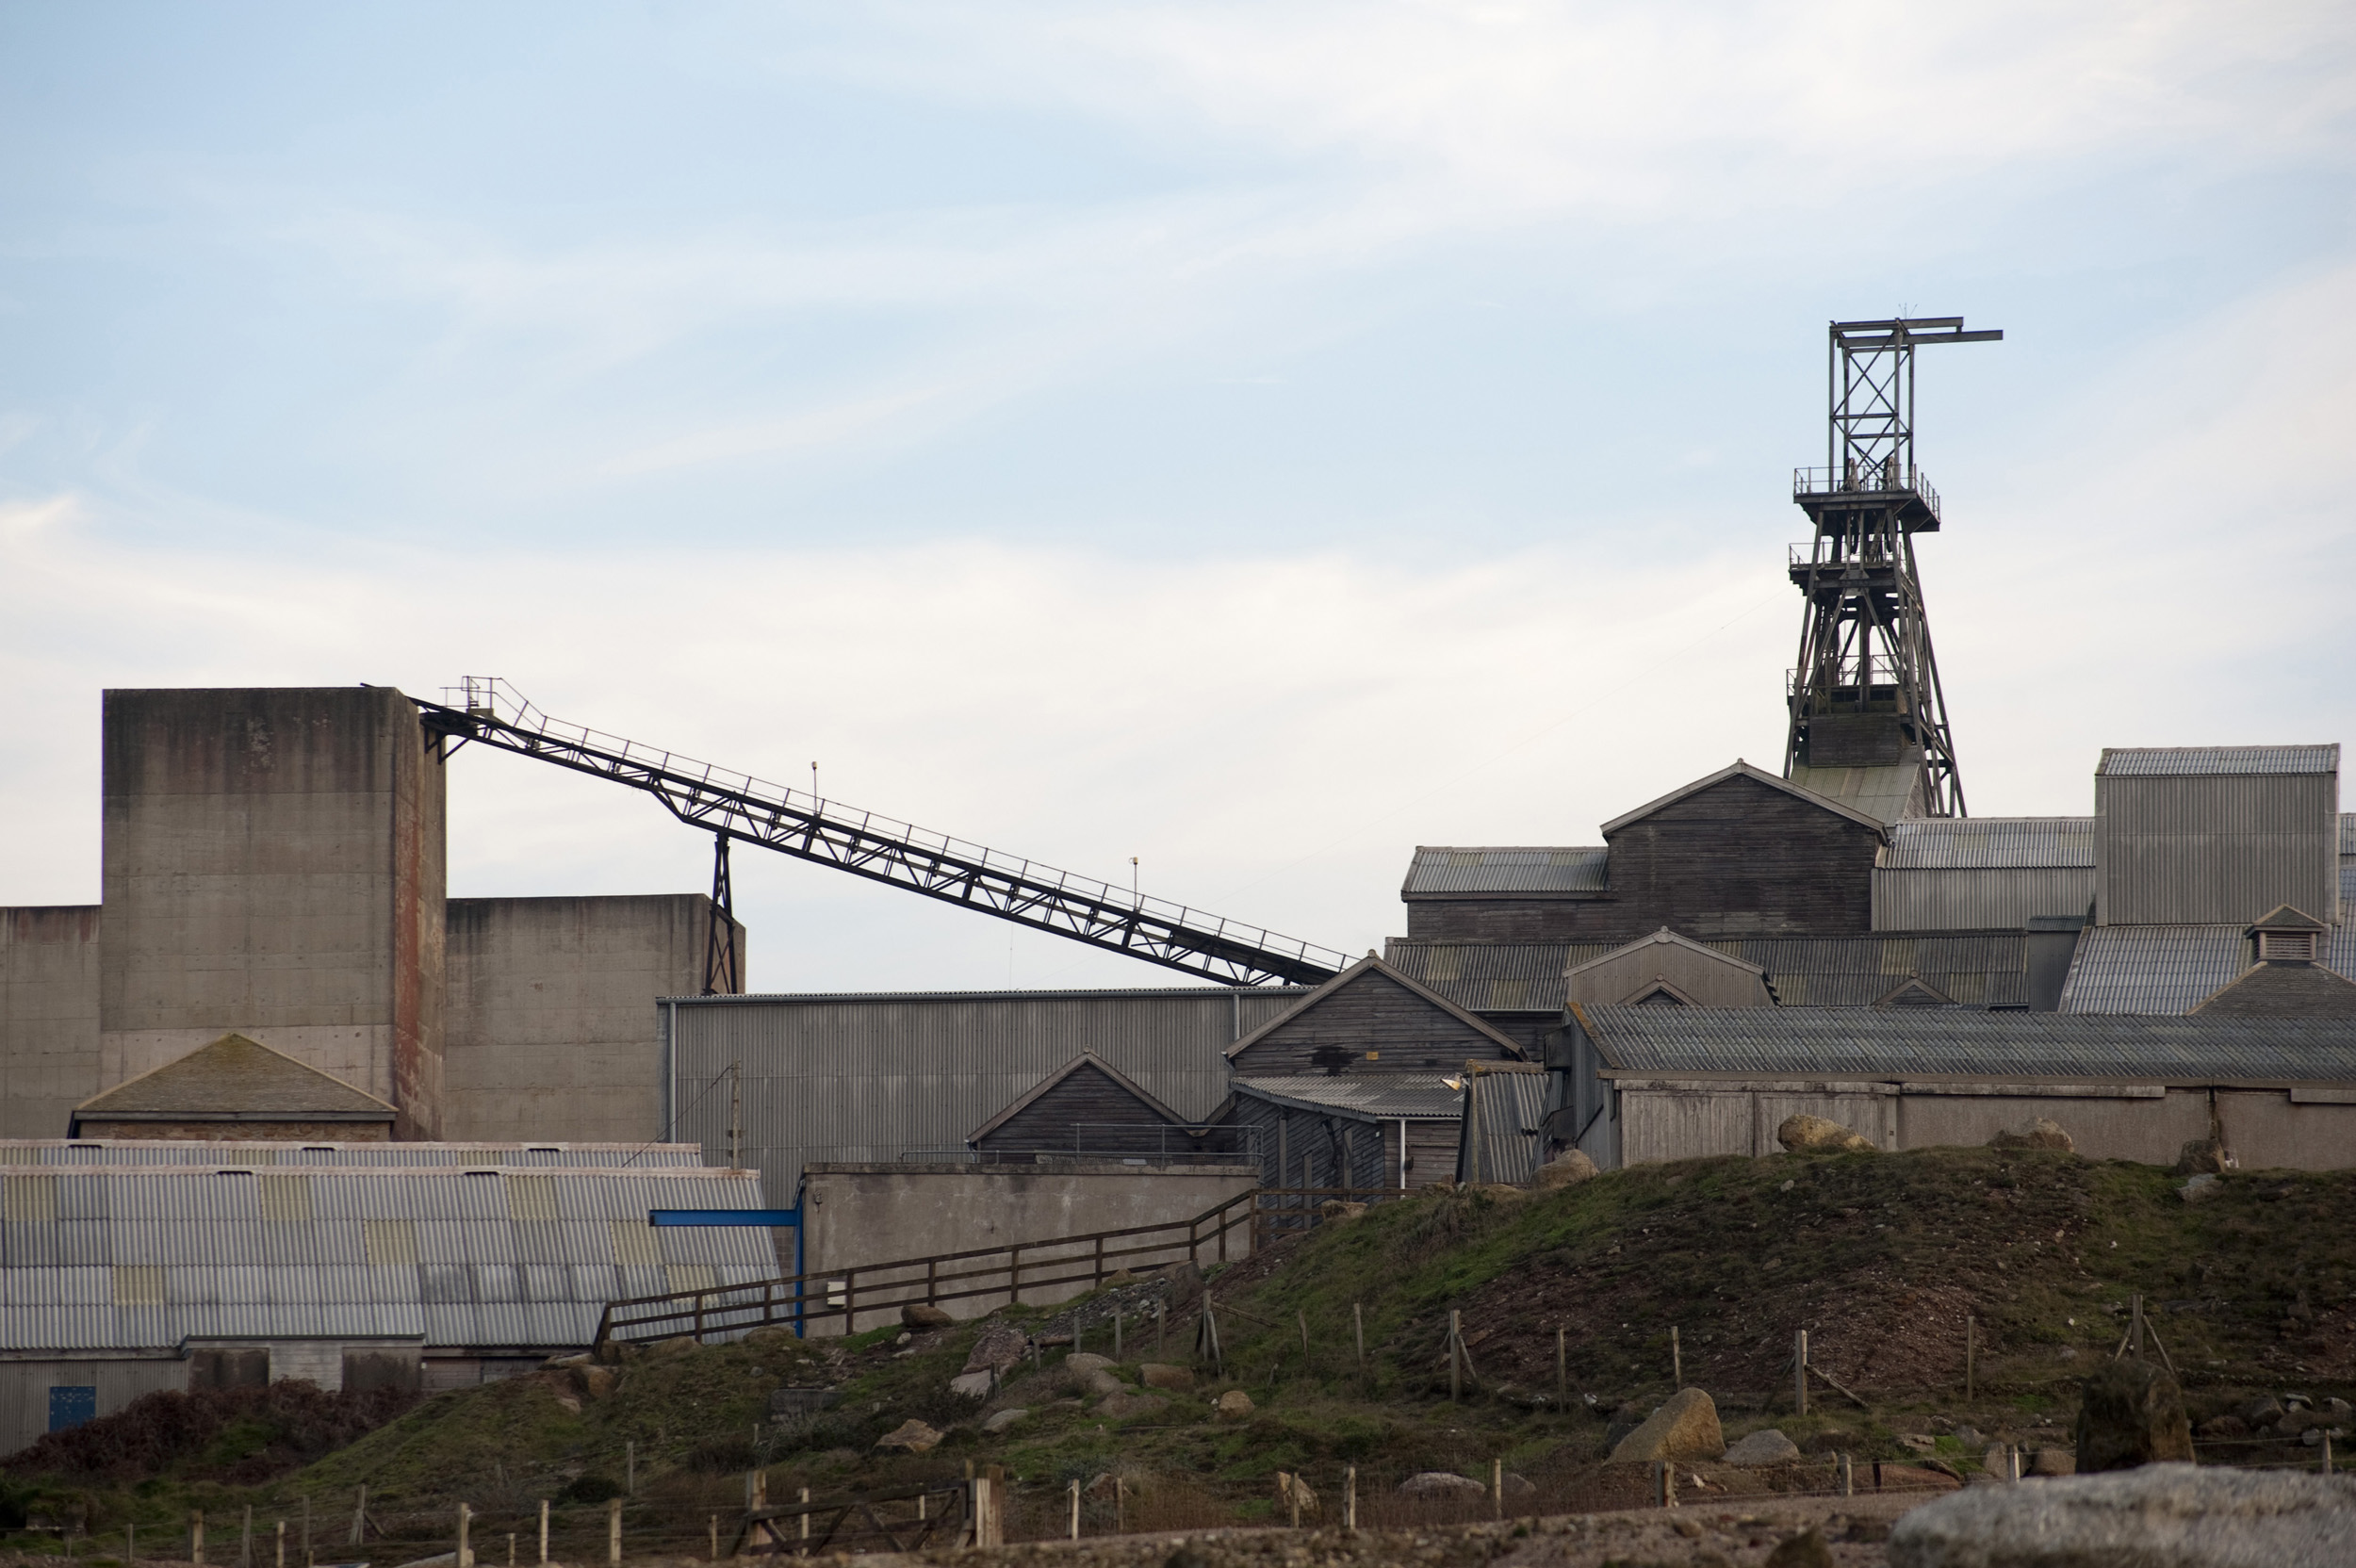 Buildings at the The Geevor Tin Mine working museum